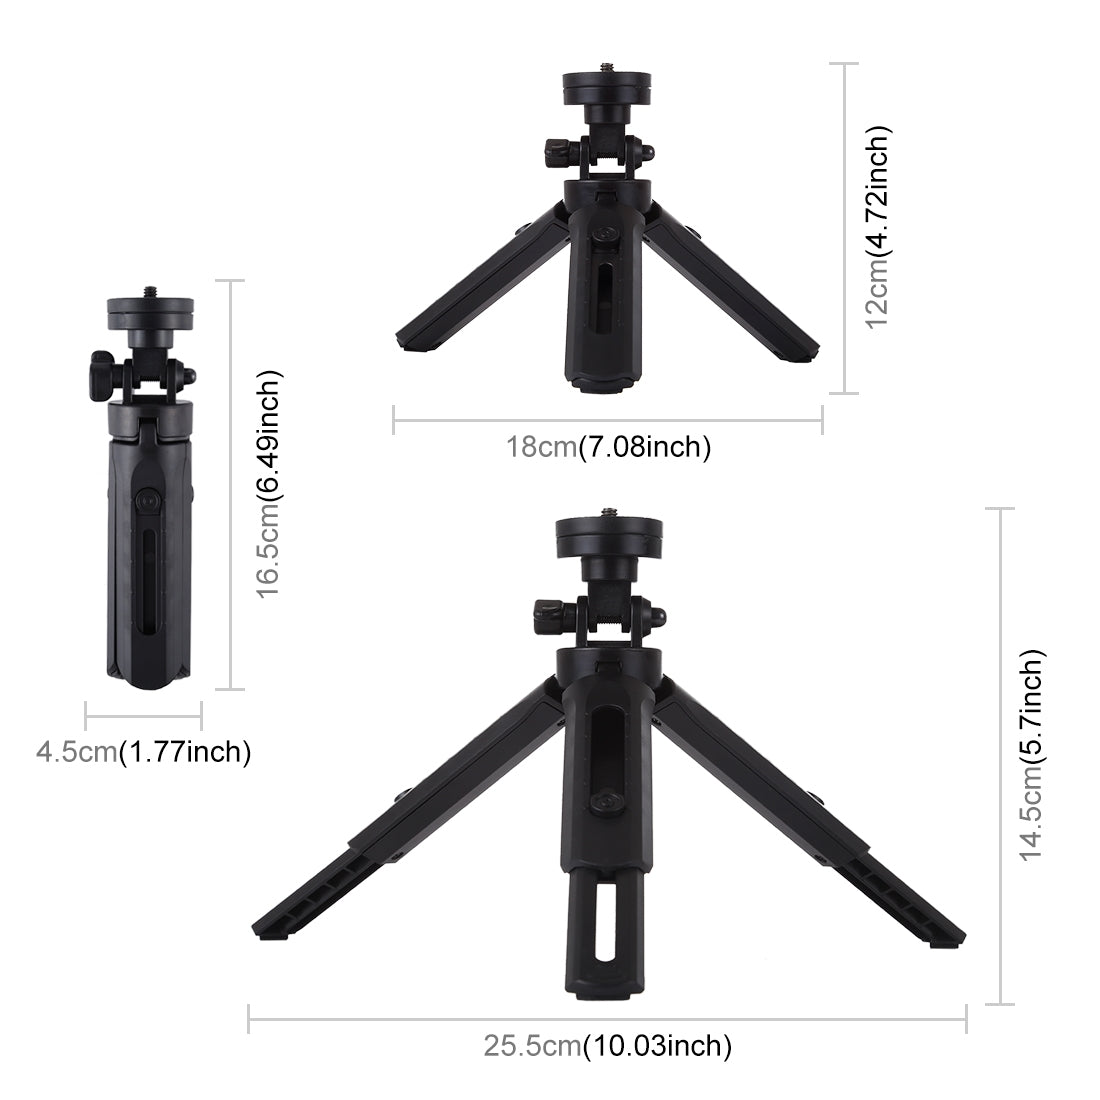 Pocket 5-mode Adjustable Desktop Tripod Mount with 1/4 inch Screw for DSLR & Digital Cameras, Adjustable Height: 16.5-21.5cm